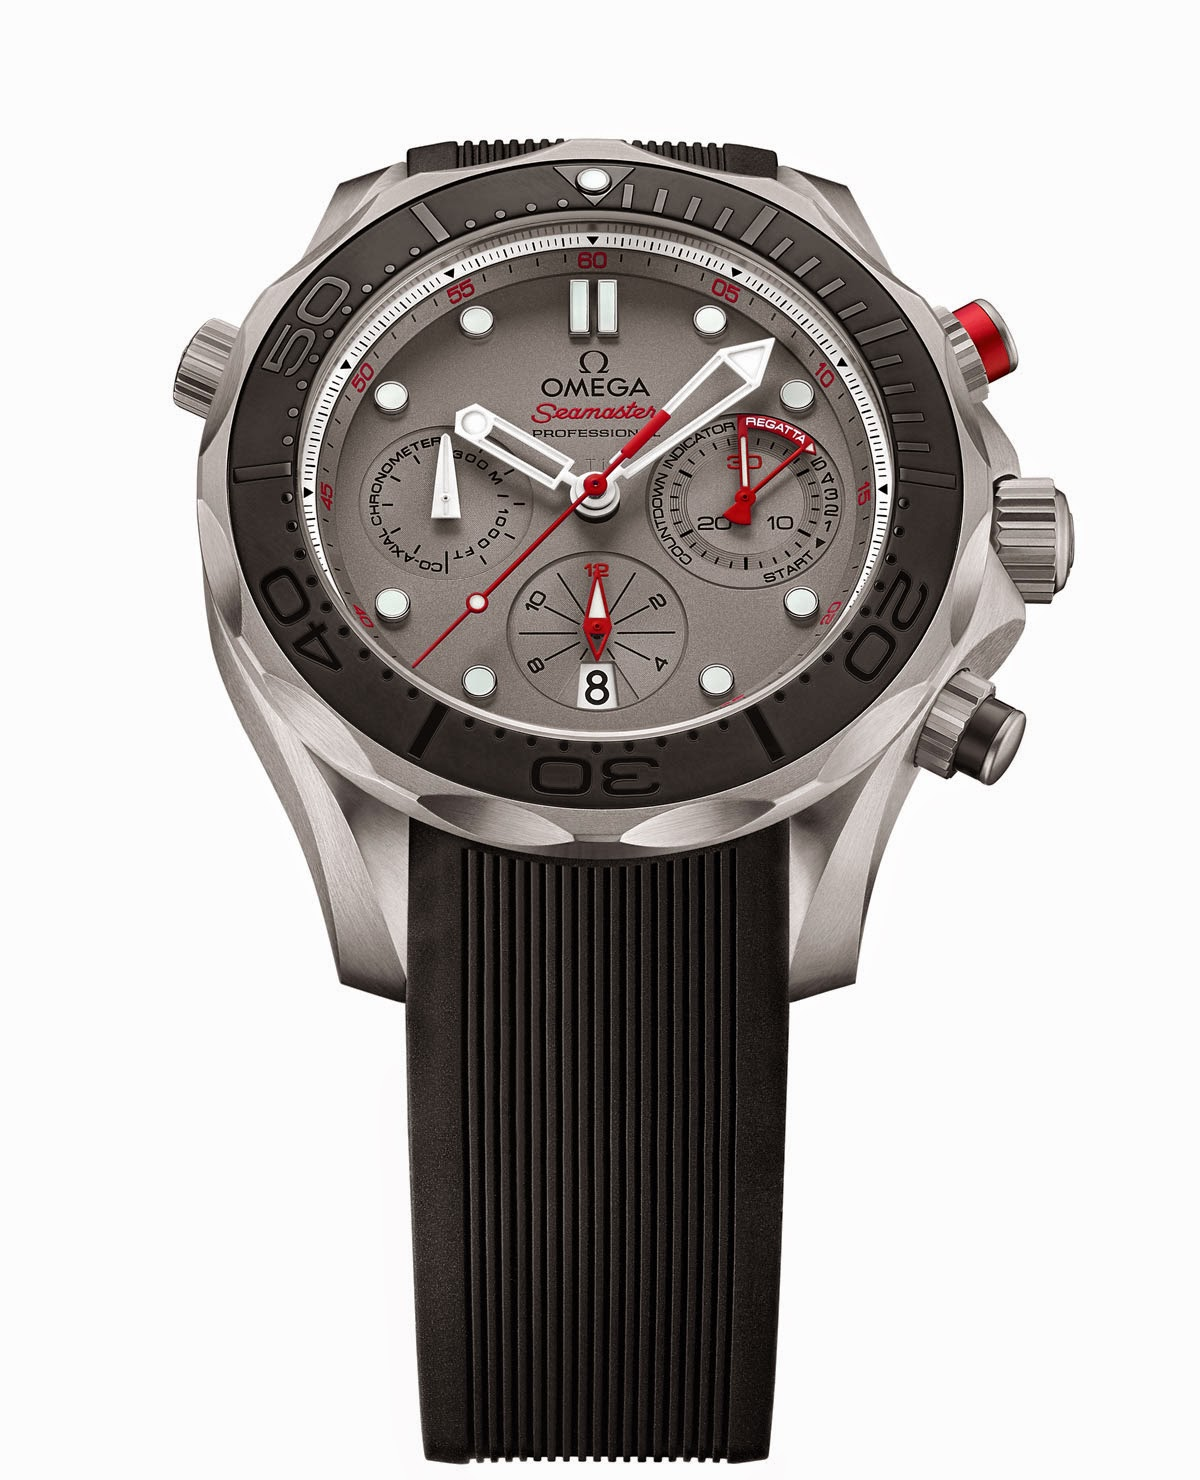 Omega seamaster diver 300m etnz time and watches - Omega dive watch ...